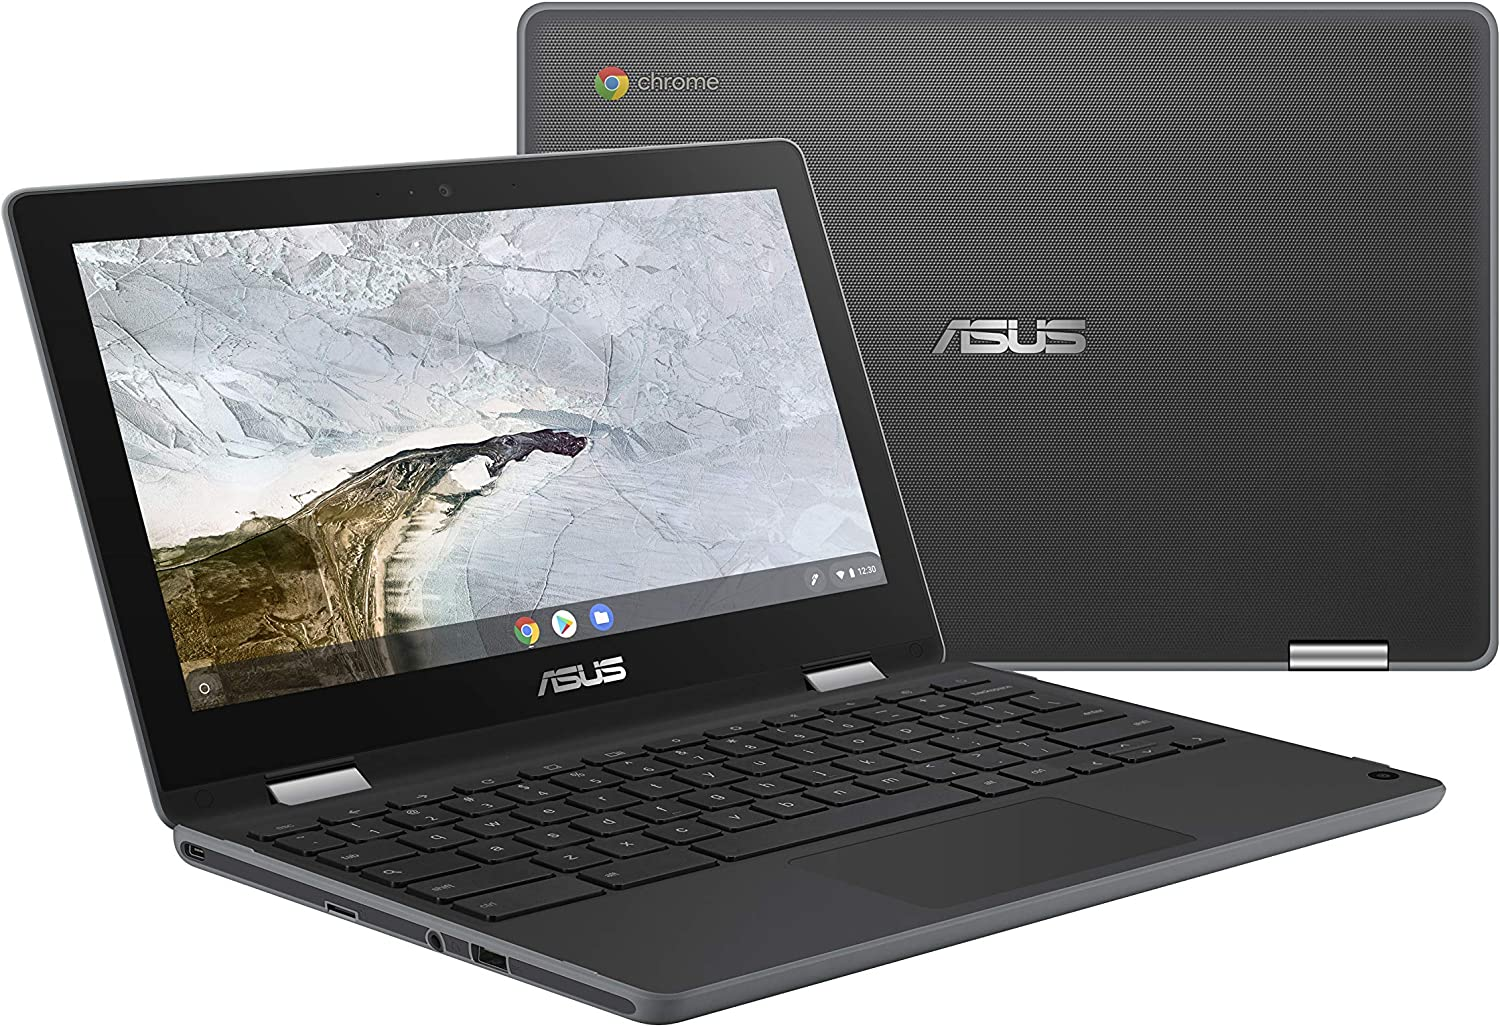 "ASUS Chromebook Flip C214 2-In-1 Laptop-11.6"" Ruggedized and Spill Resistant Design with 360 Degree Touchscreen, Intel N4000, 4GB LPDDR4 RAM, 32GB Storage, Chrome OS, Built-In Stylus- C214MA-YS02T-S"